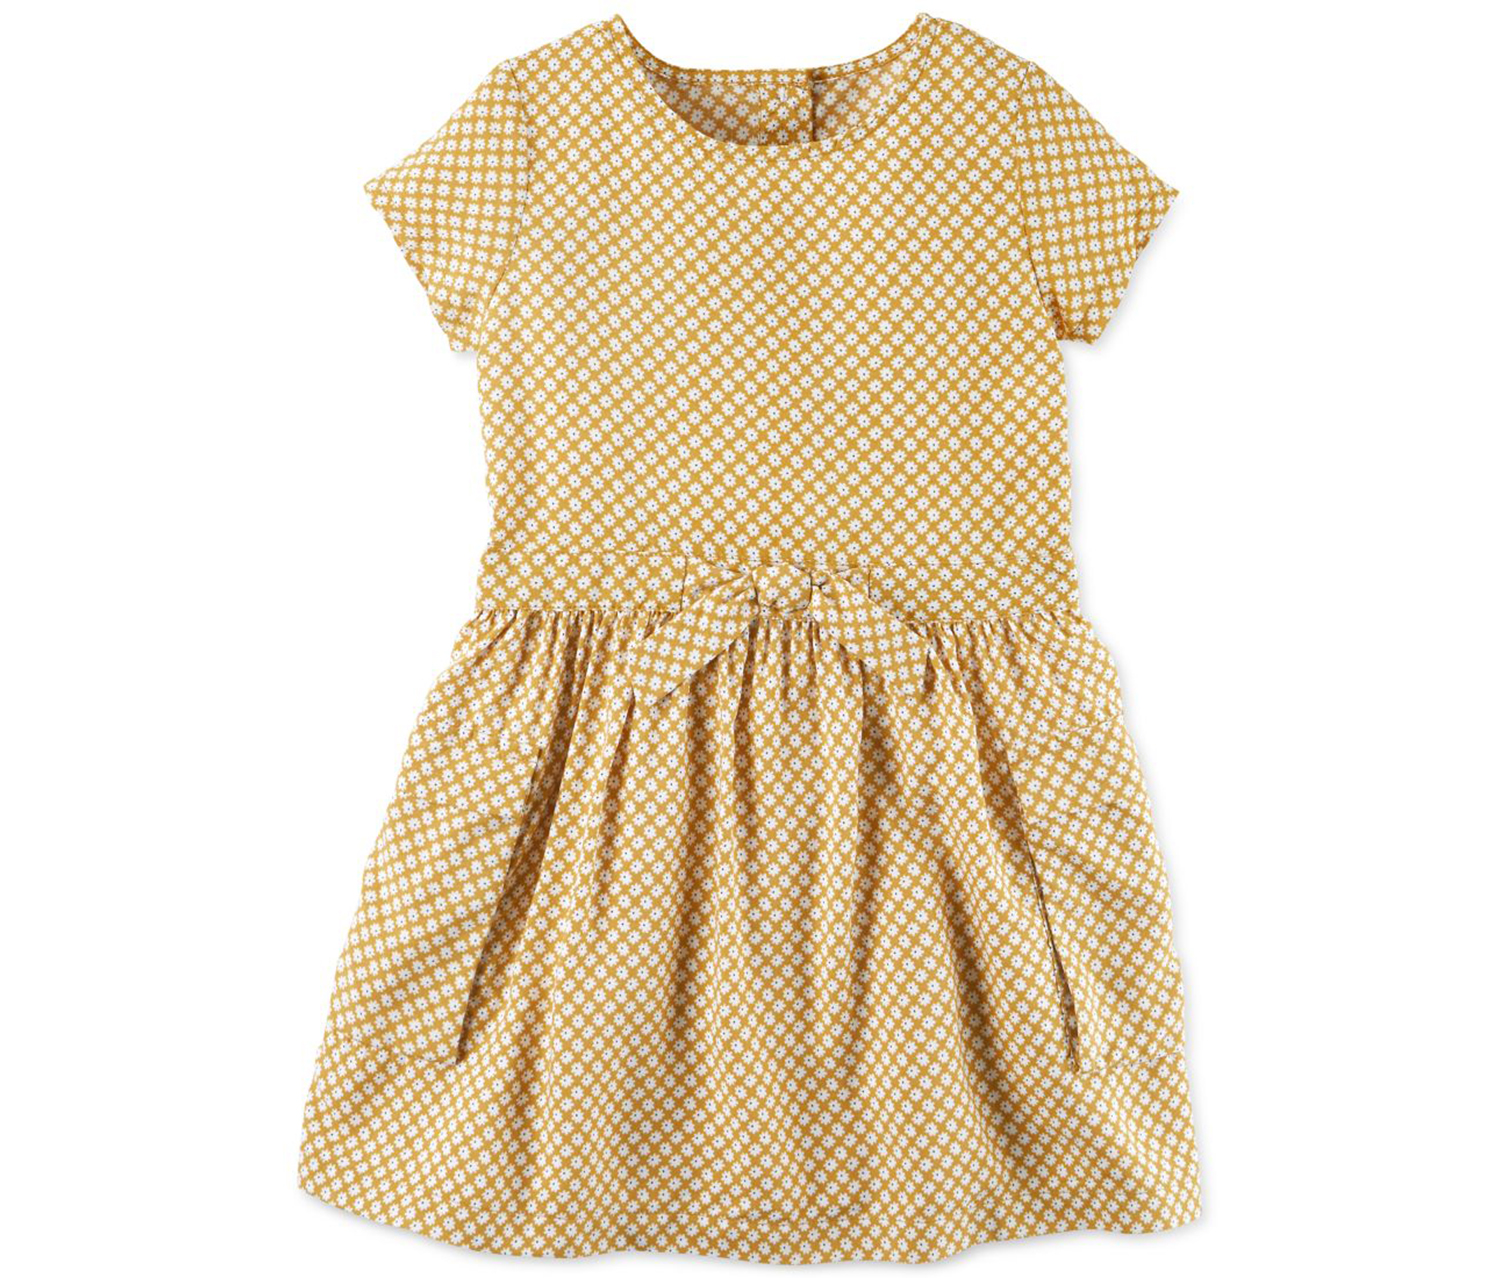 ac12807381a1 Shop Carters Carter's Girl's Sleeveless A-Line Dress, Tod Gold for ...